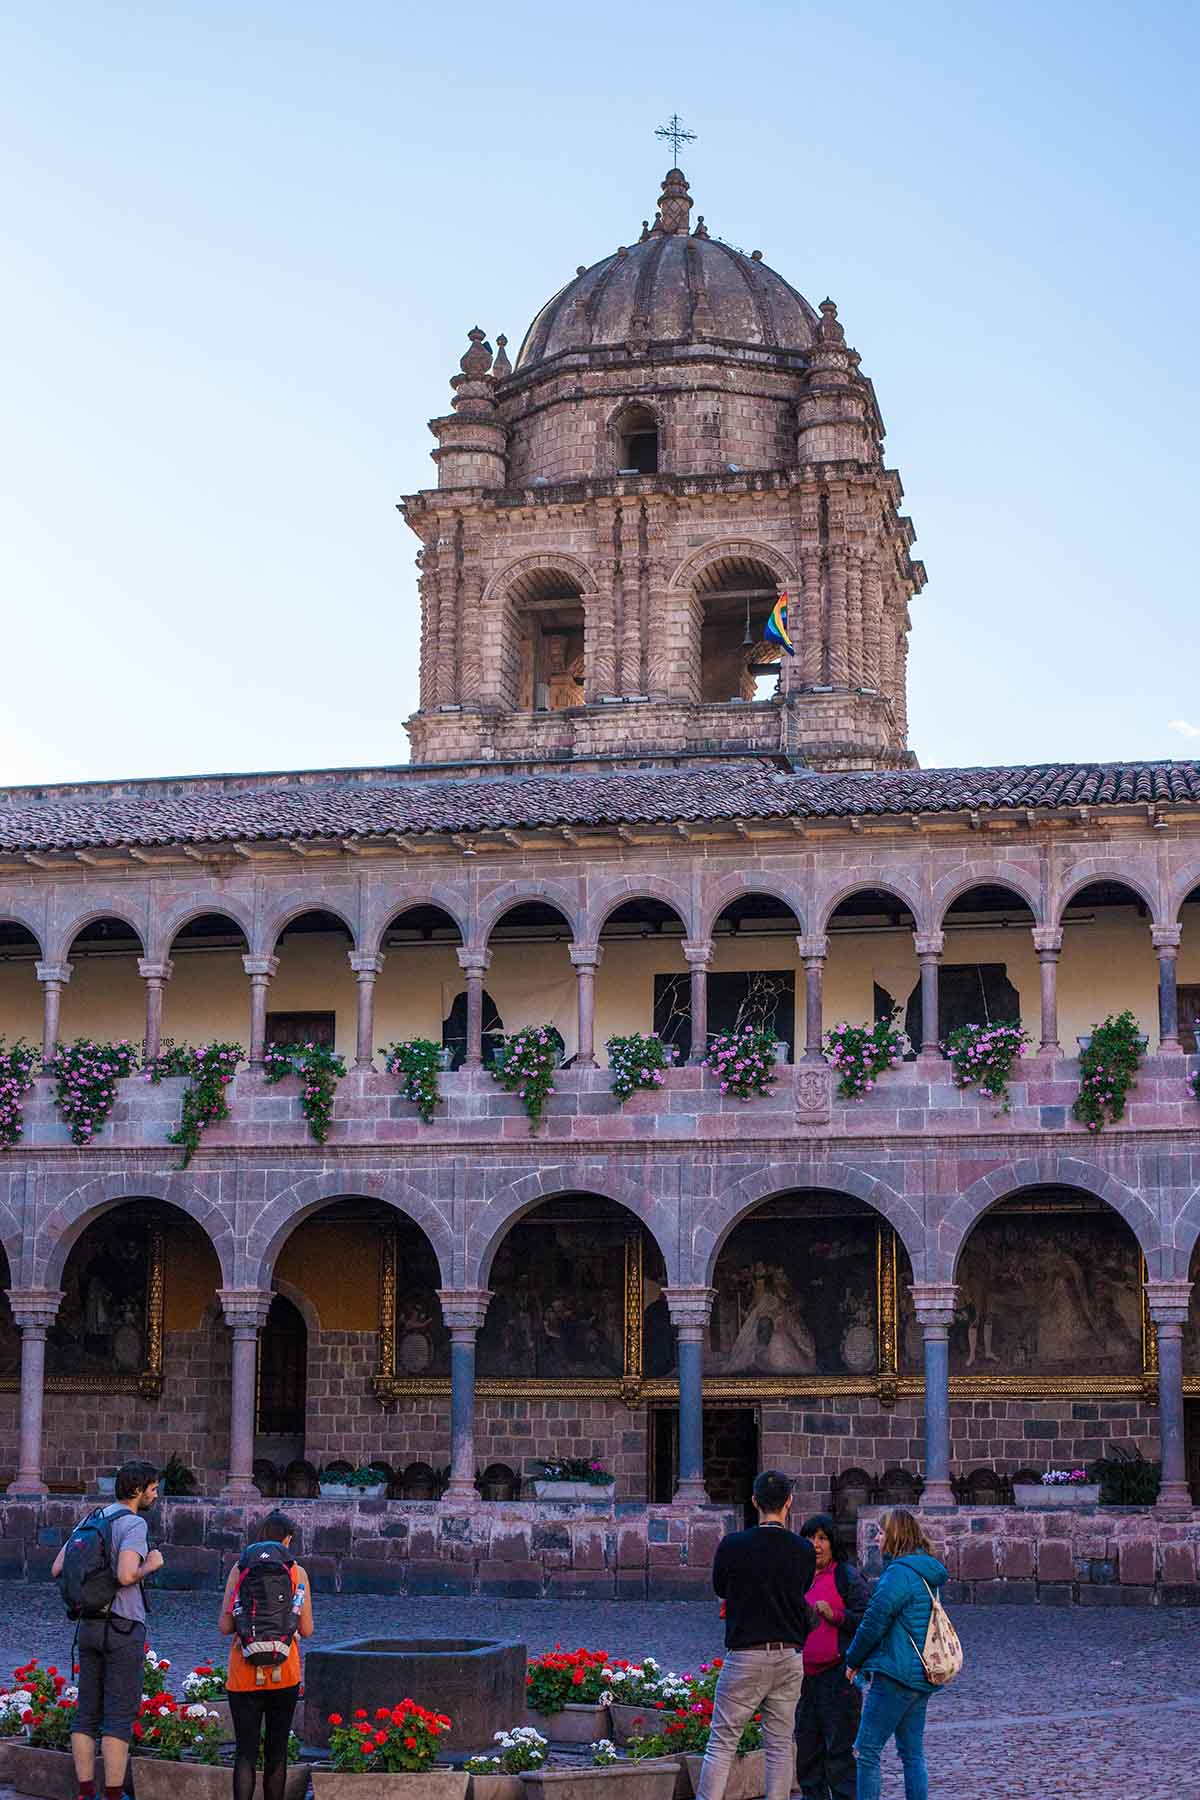 Two stories of arcaded paths surround the courtyard of the stone Santo Domingo church.